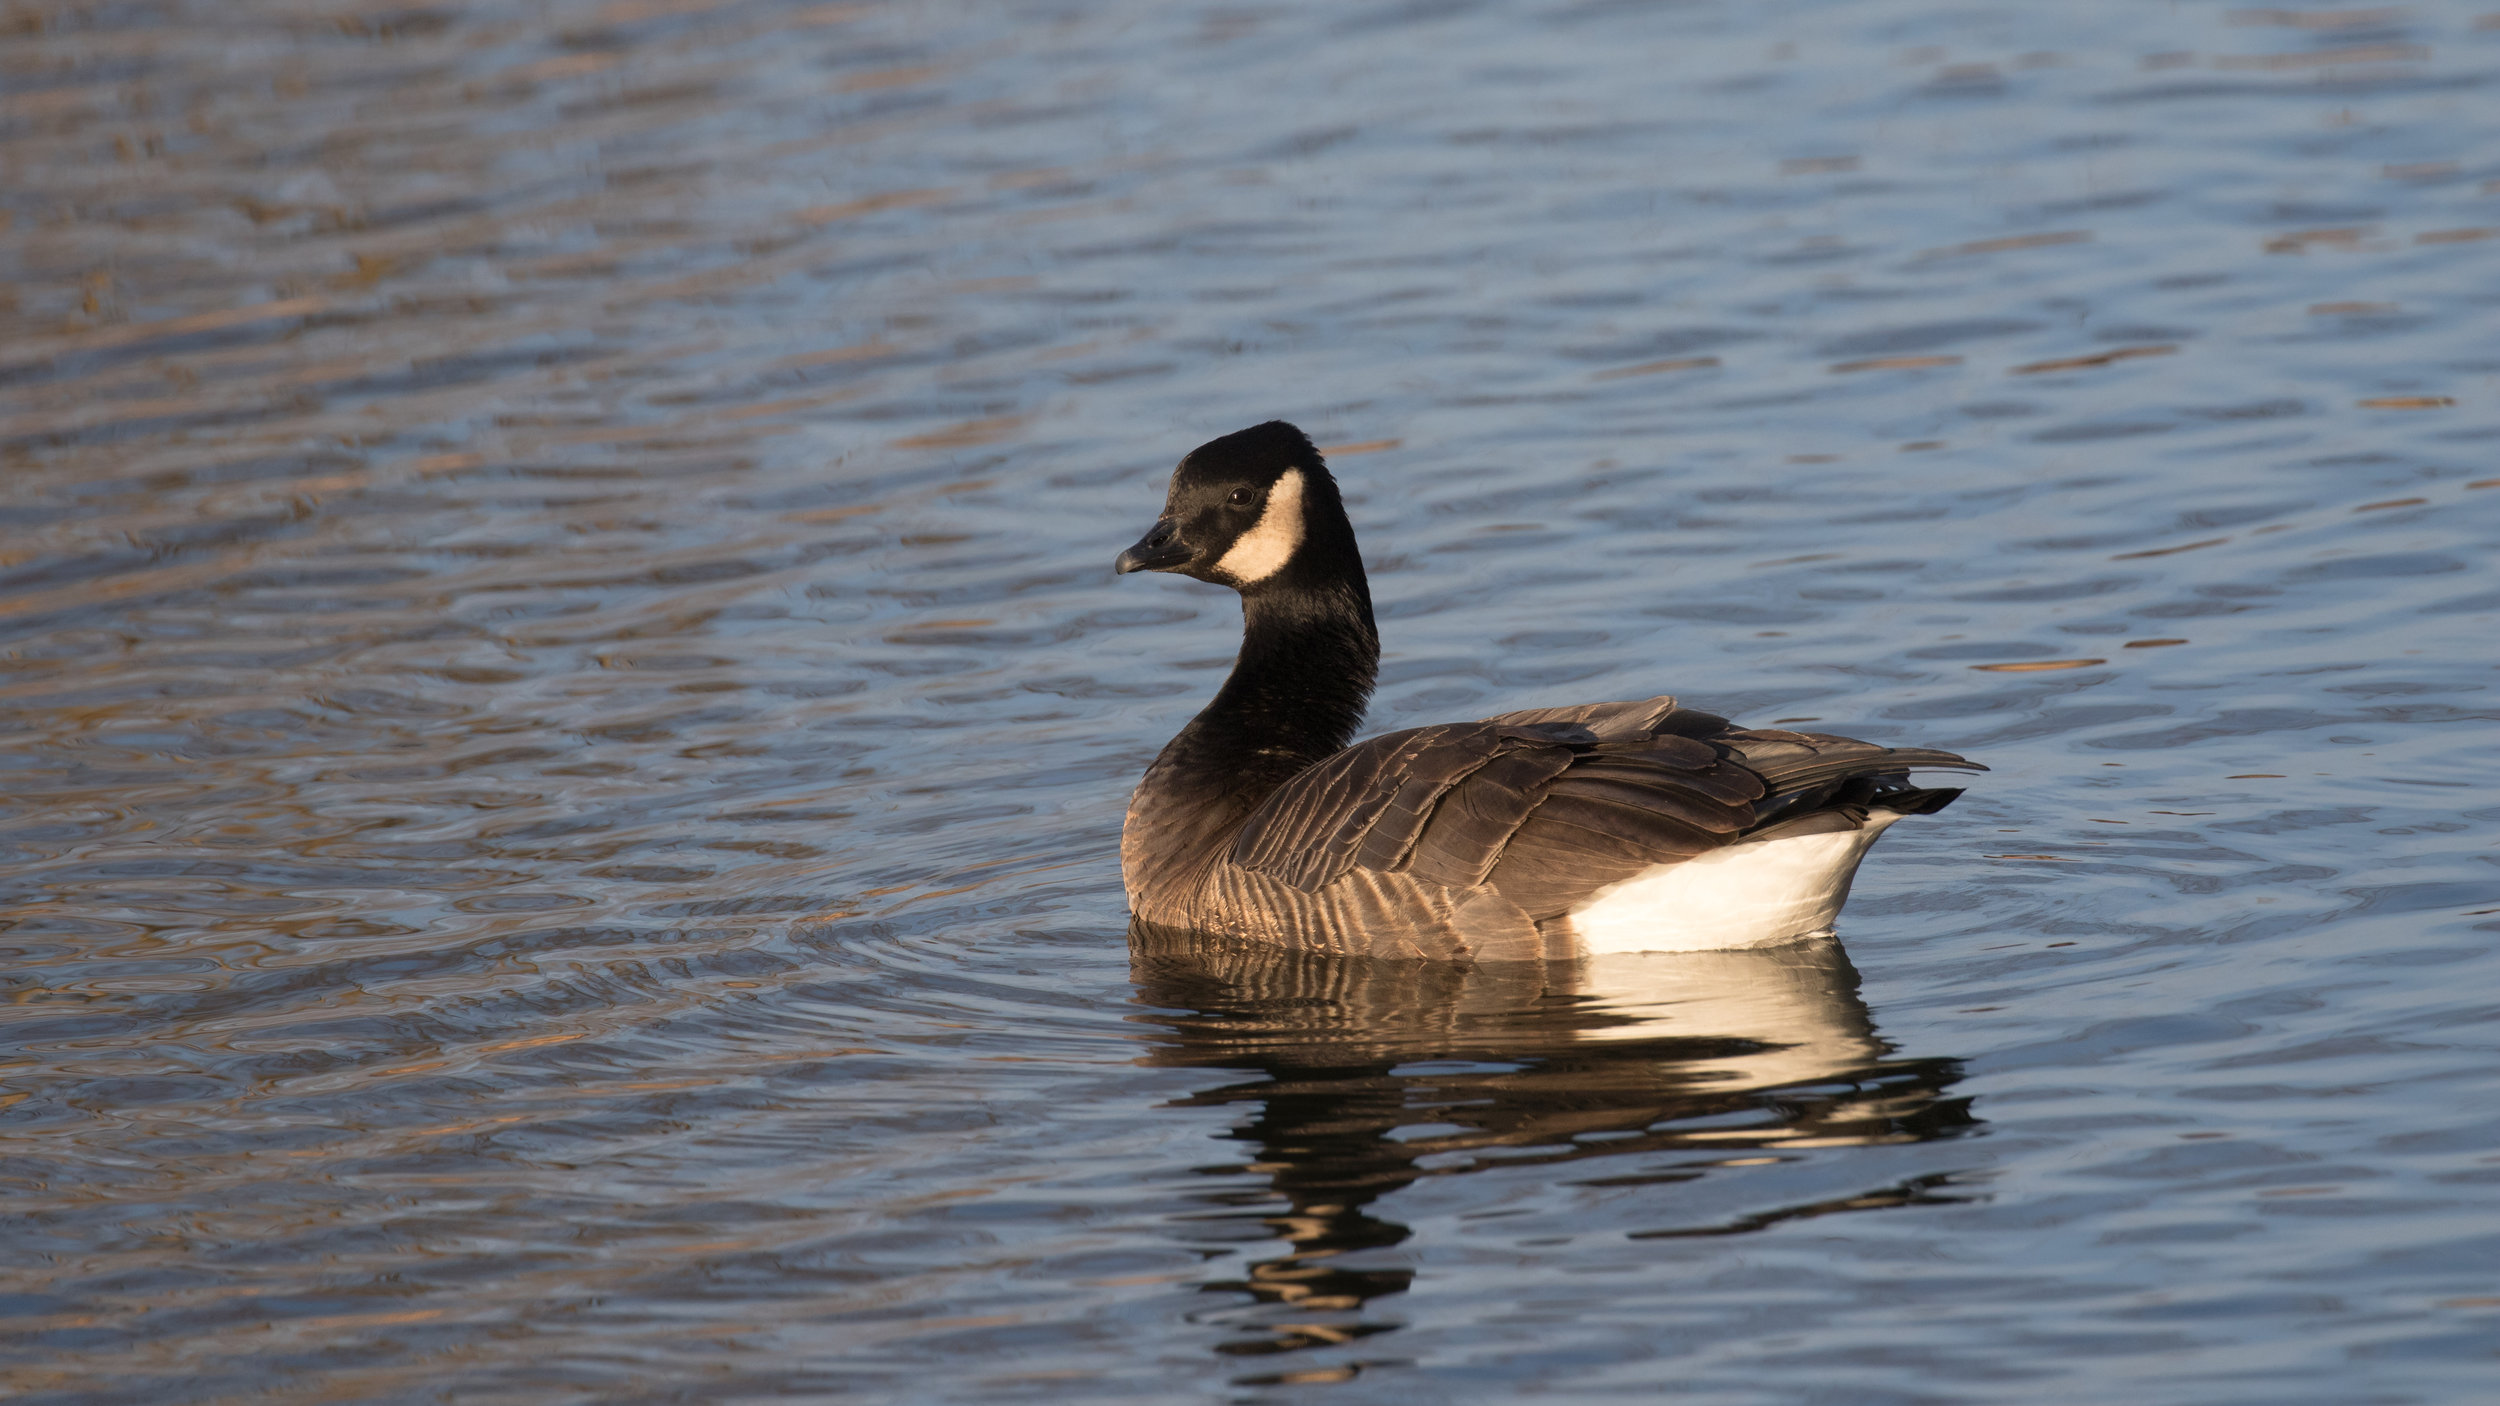 Cackling Goose (Branta hutchinsii) in France. January 2019. Not baited. Not called in.